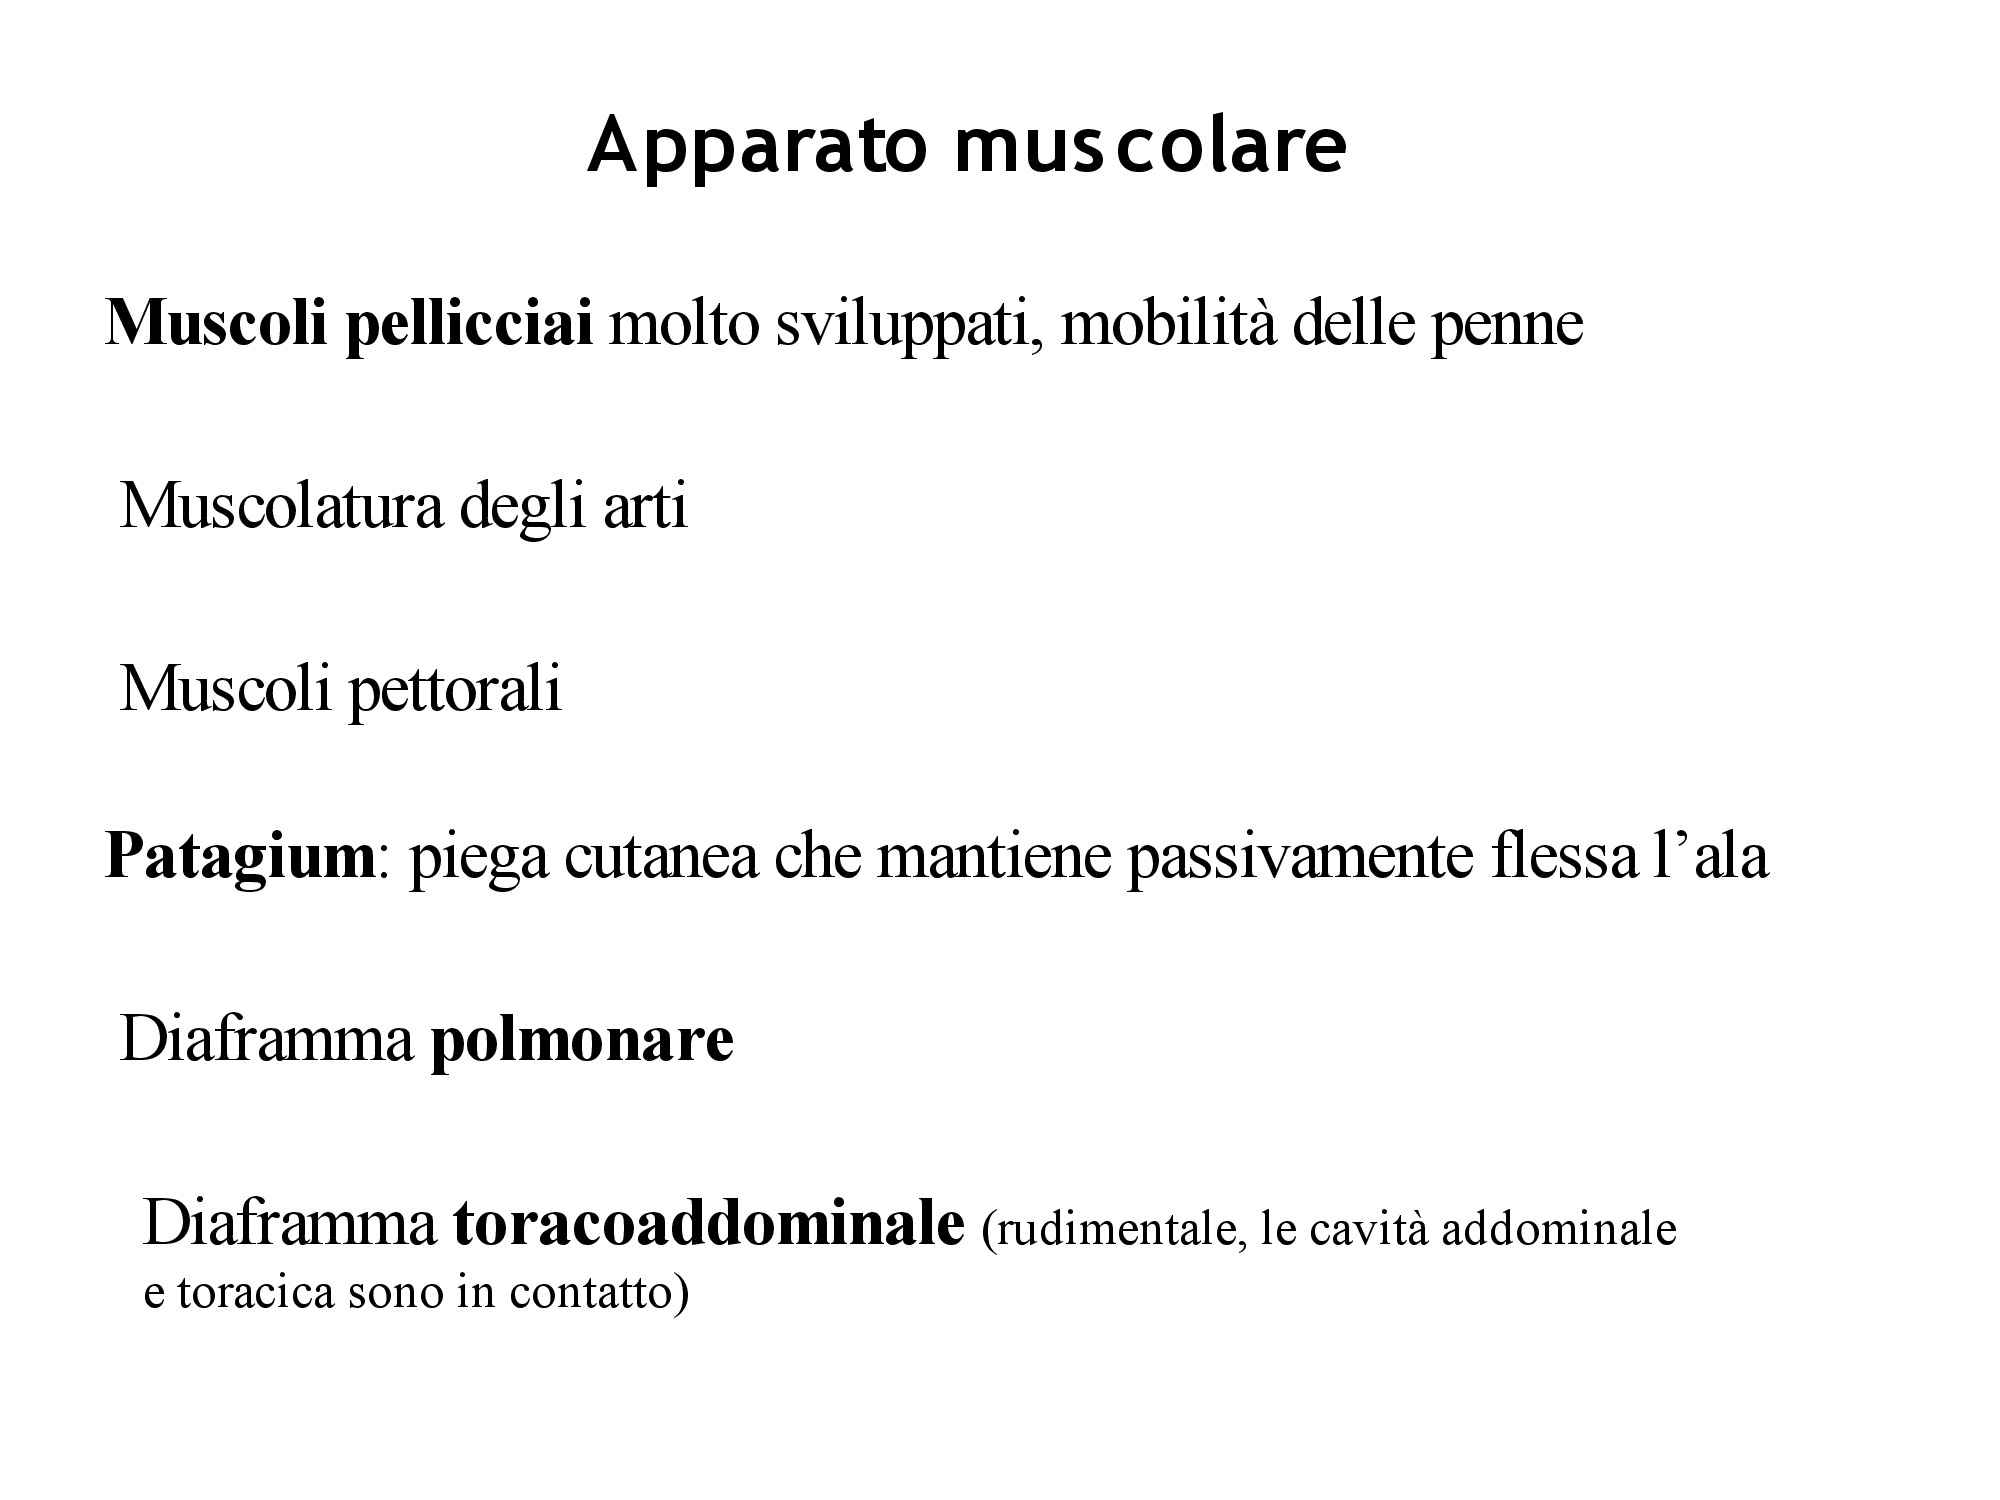 Uccelli - Apparato muscolare Pag. 1